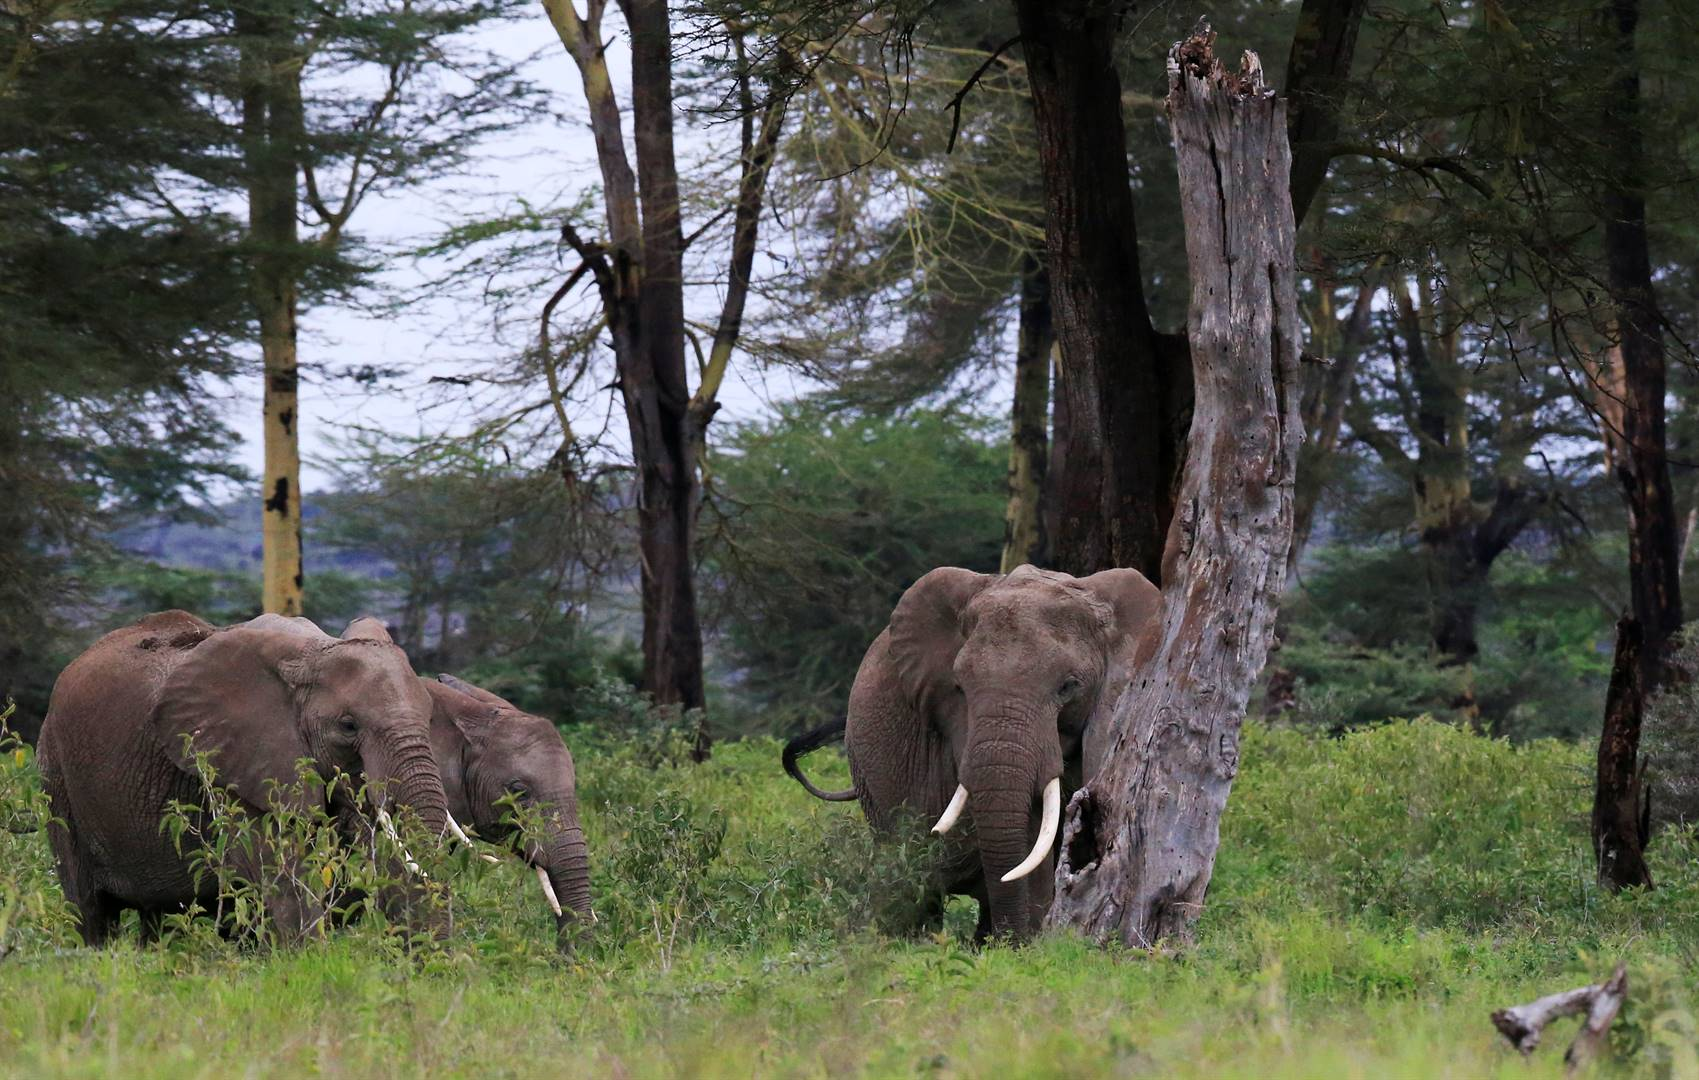 Elephants are seen within the Kimana Sanctuary, part of a crucial wildlife corridor that links the Amboseli National Park to the Chyulu Hills and Tsavo protected areas, within the Amboseli ecosystem in Kimana, Kenya. Picture: Reuters